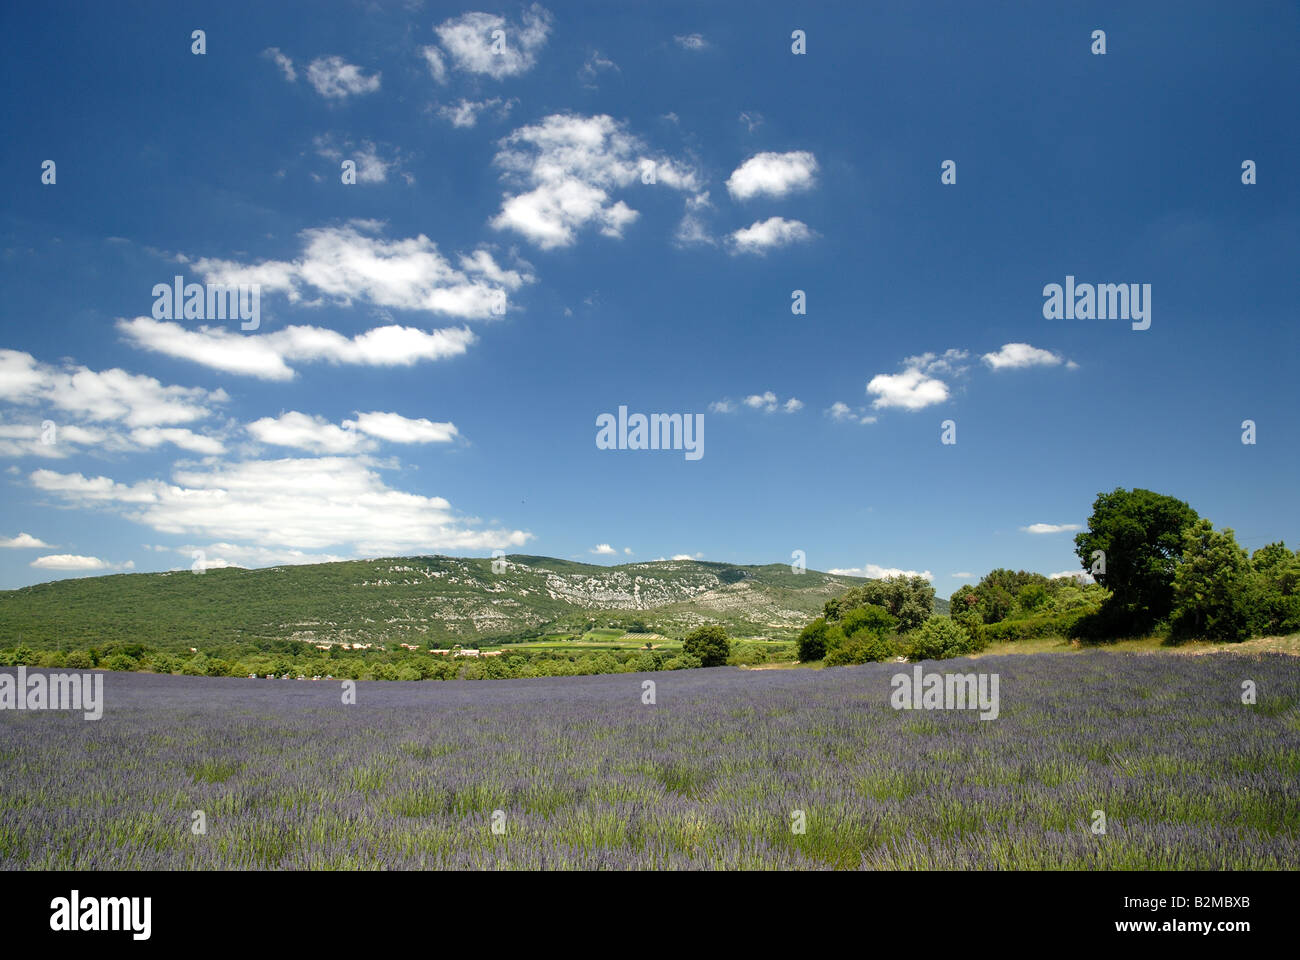 Lavender field in the Provence, France Stock Photo